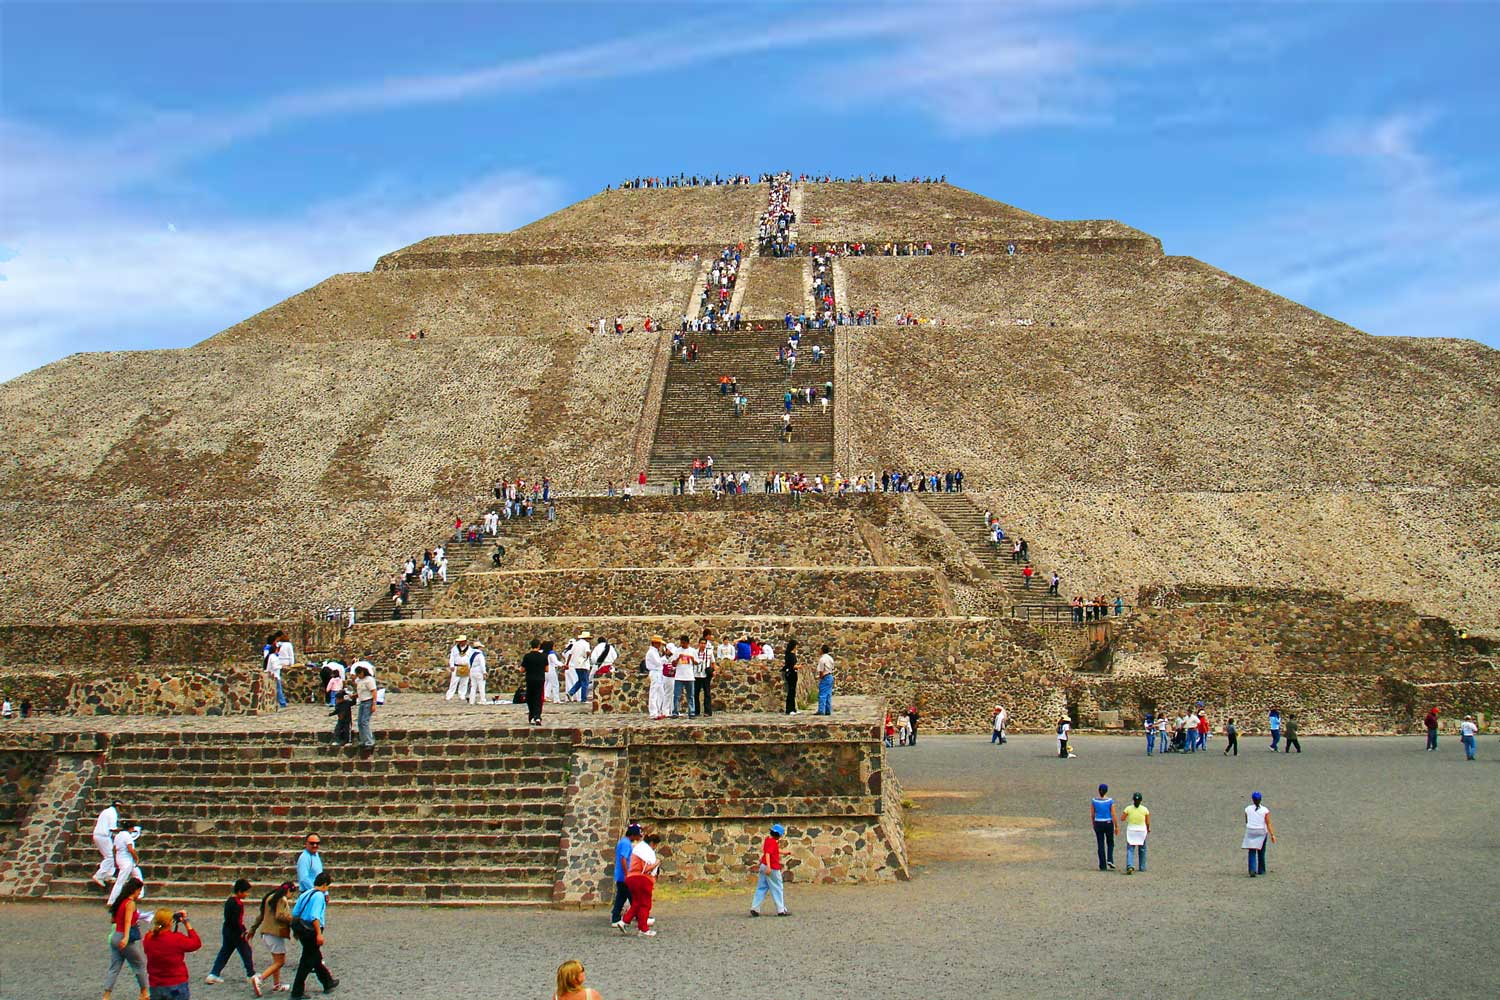 Mexico City Day Trips - Teotihuacan